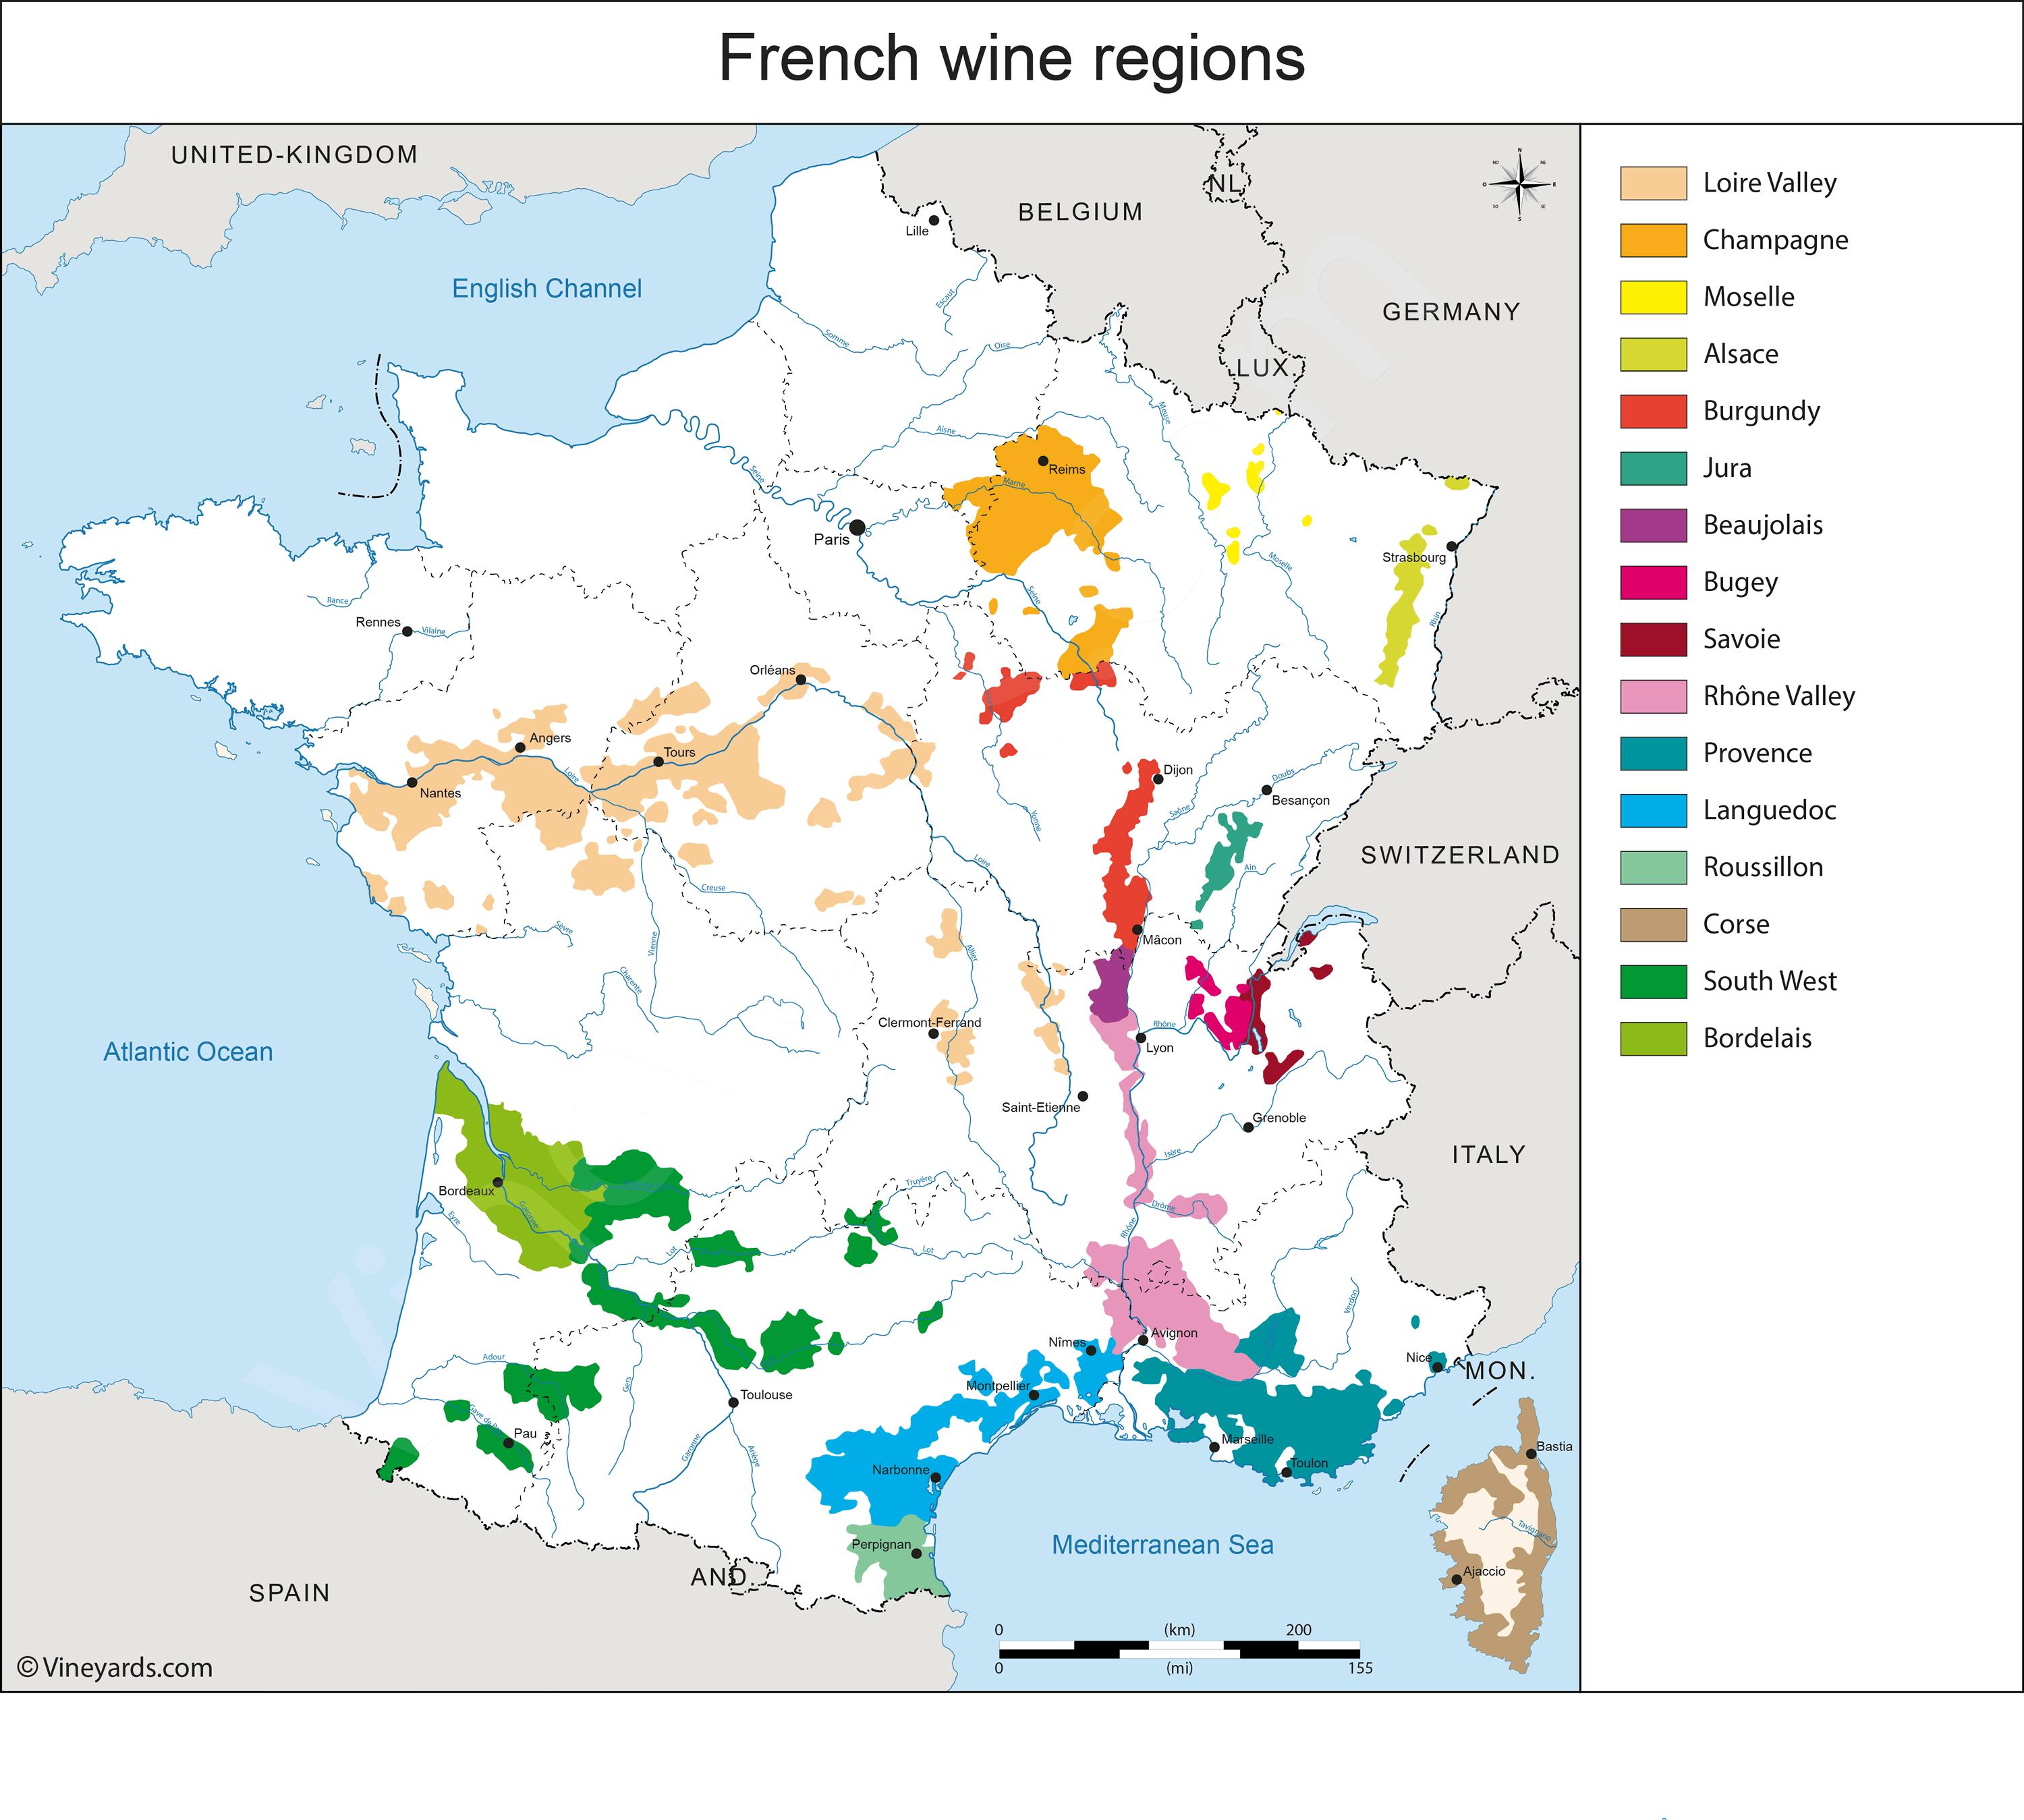 France Map of Vineyards Wine Regions on map of countries that border france, map of france and turkey, map with countries border iran, map of france and neighboring countries, map of france regions departements, map of france and mountains, map of monaco and surrounding countries, map pyrenees france, map french regions in france, france and surrounding countries, map of brussels and surrounding countries, map of france and seas, map of france burgundy wine region, map of france and neighbouring countries, us map with surrounding countries, map of ancient greece and greek islands, map of france after french revolution, map of france wine growing regions, map with italy flag, map of france and outlying countries,